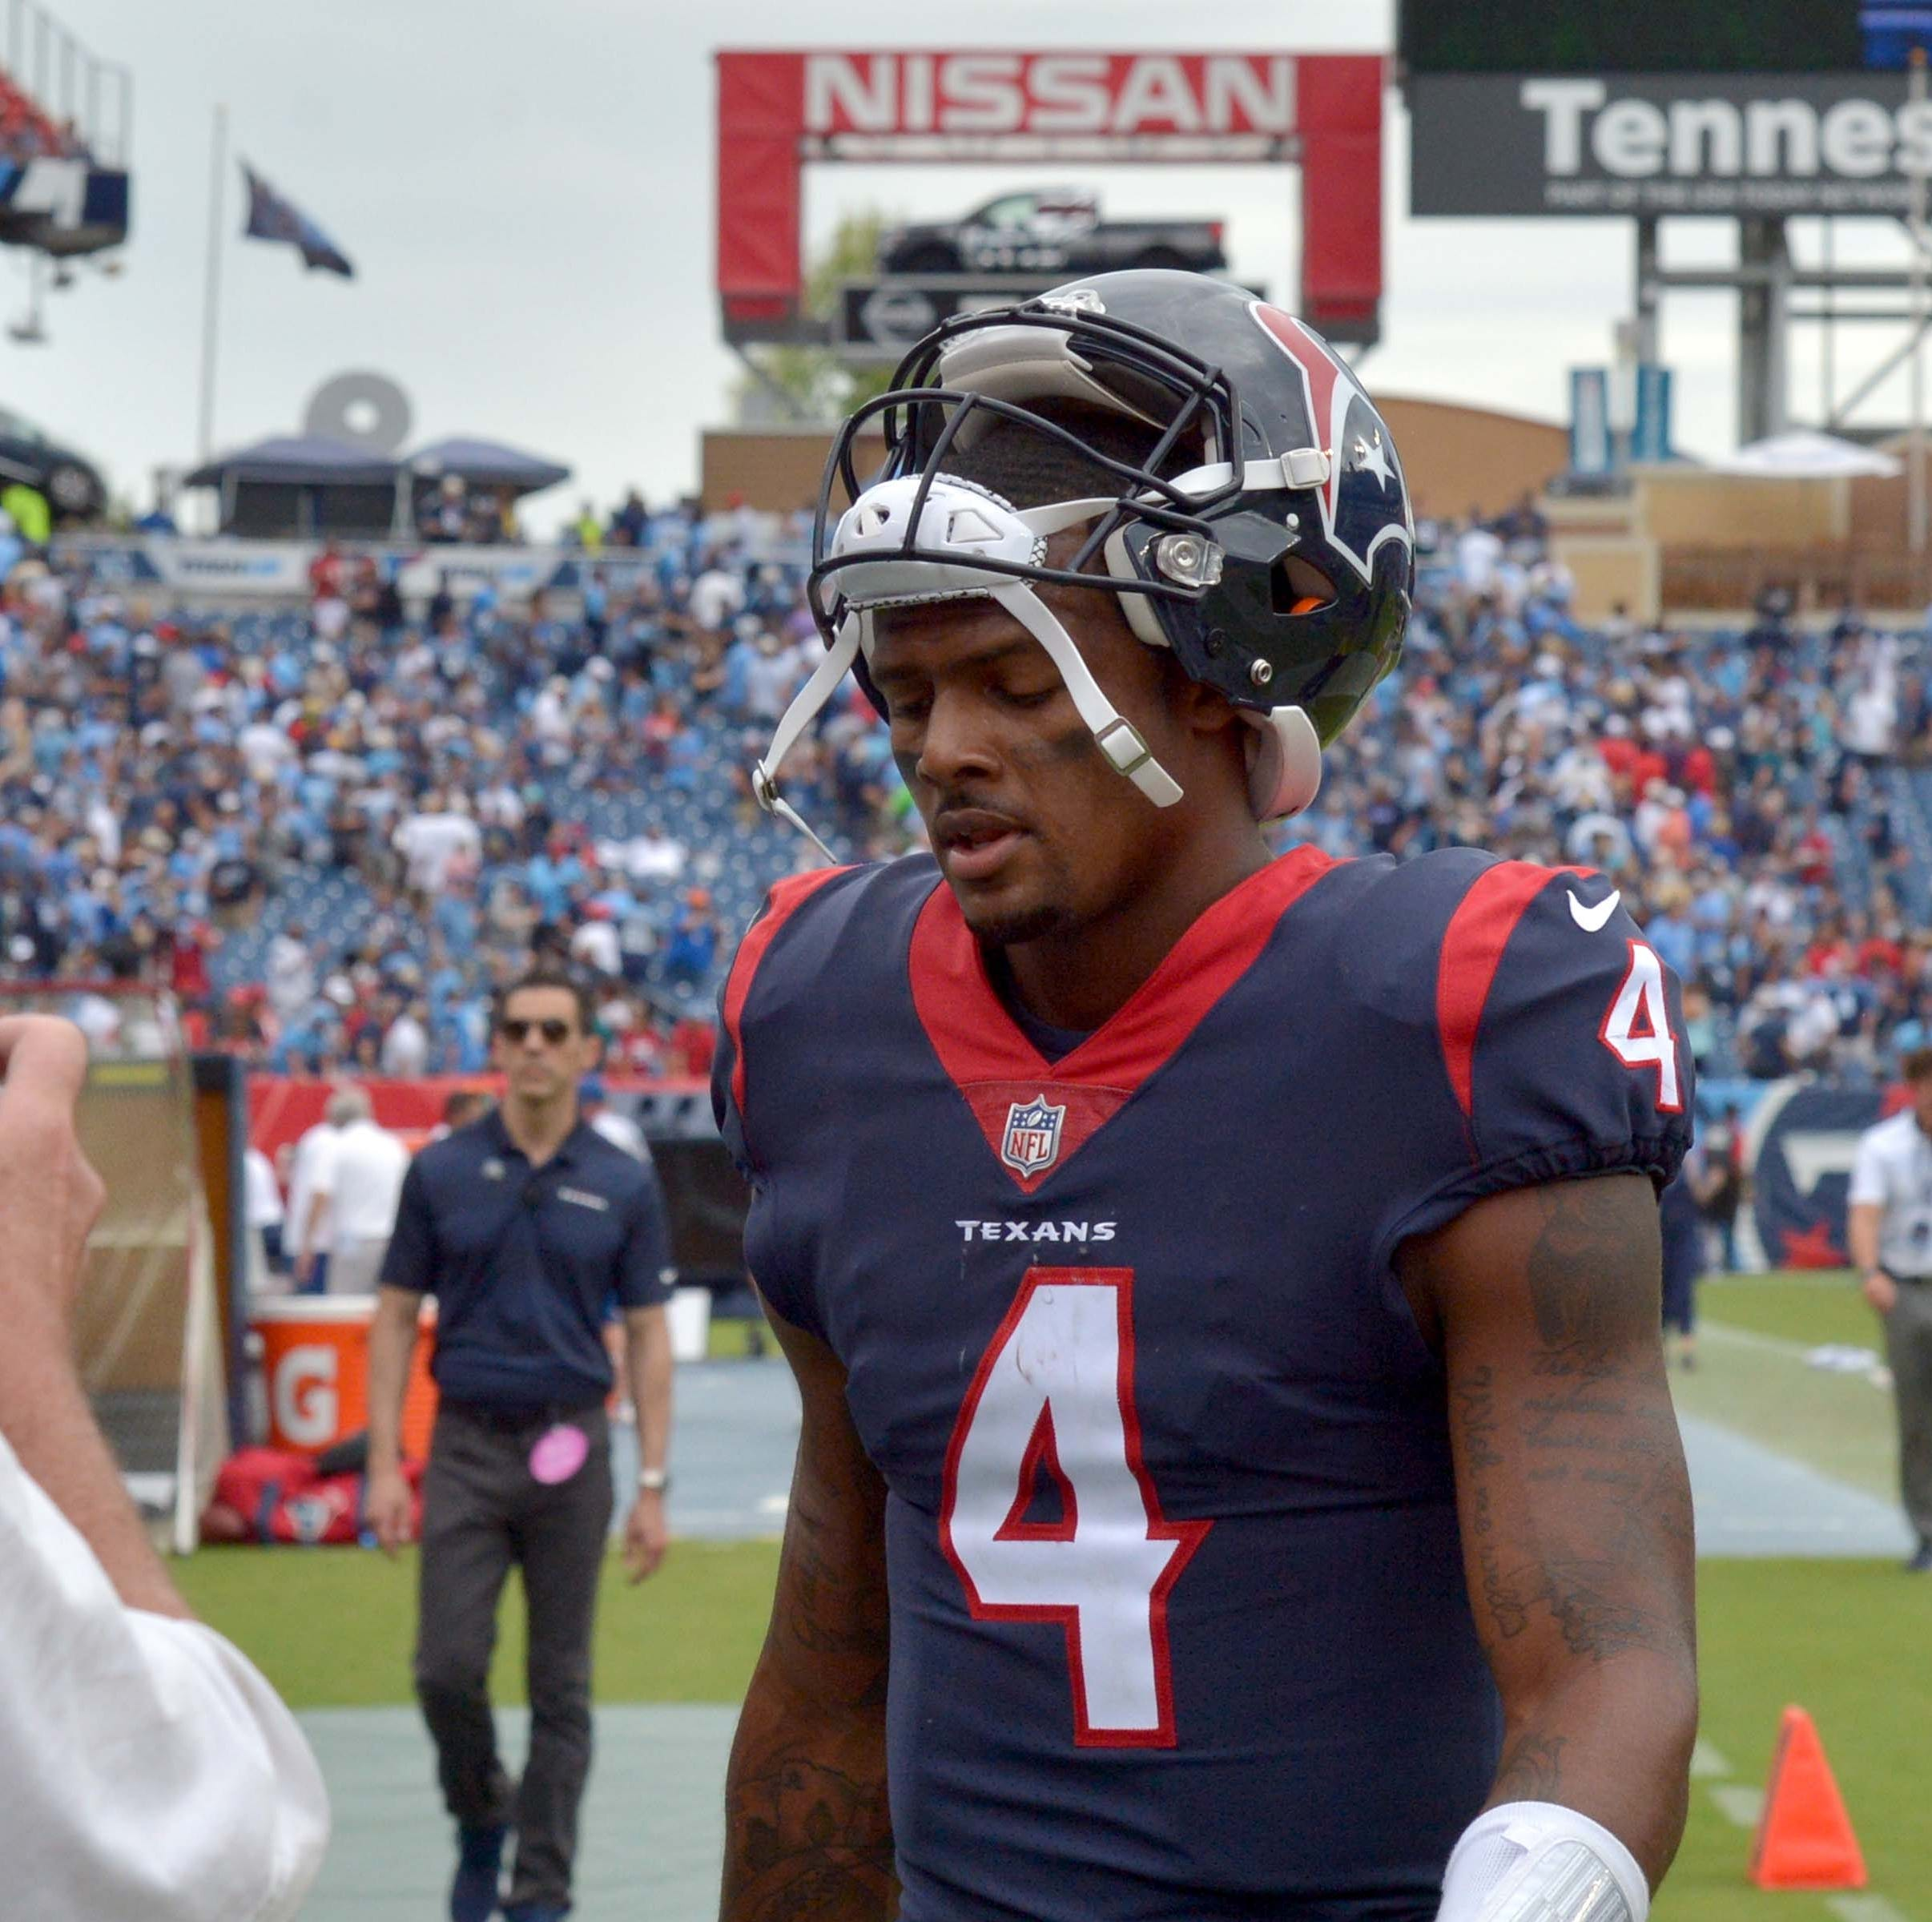 Texans' QB Deshaun Watson responds to Texas school superintendent's racial comment